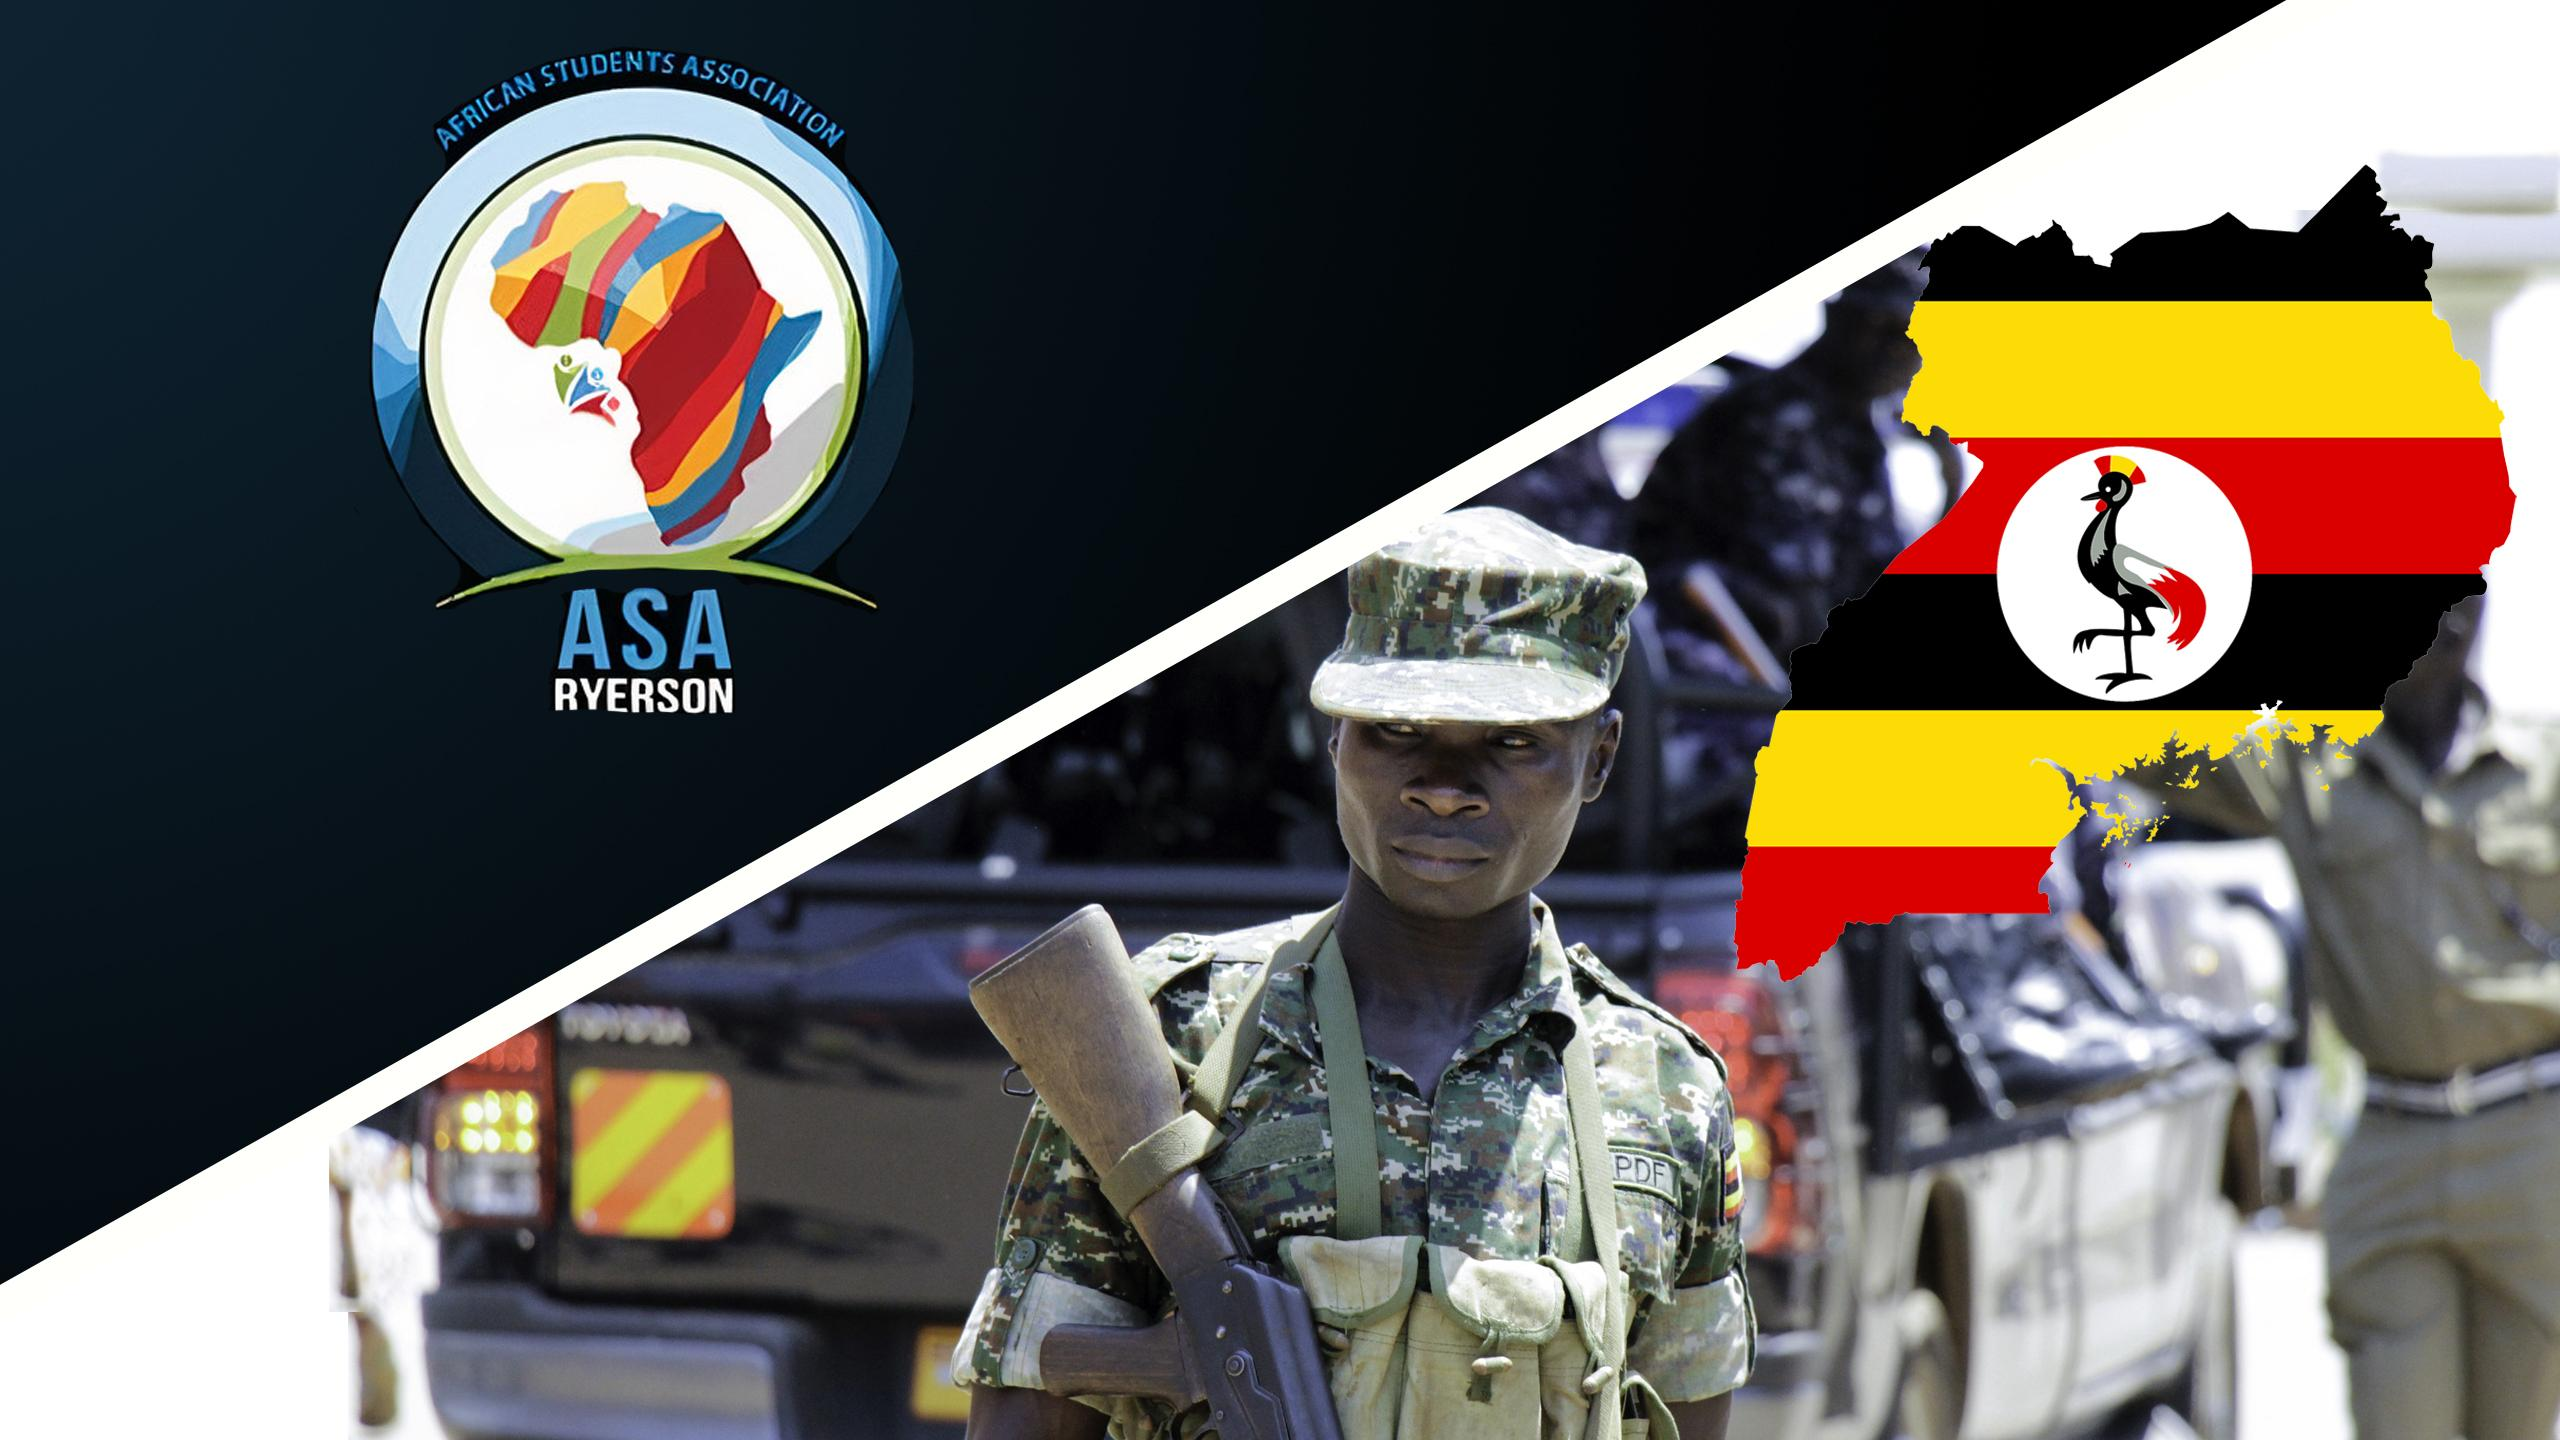 Logo of Ryerson's African Students Association next to 2016 photo of Uganda's military police